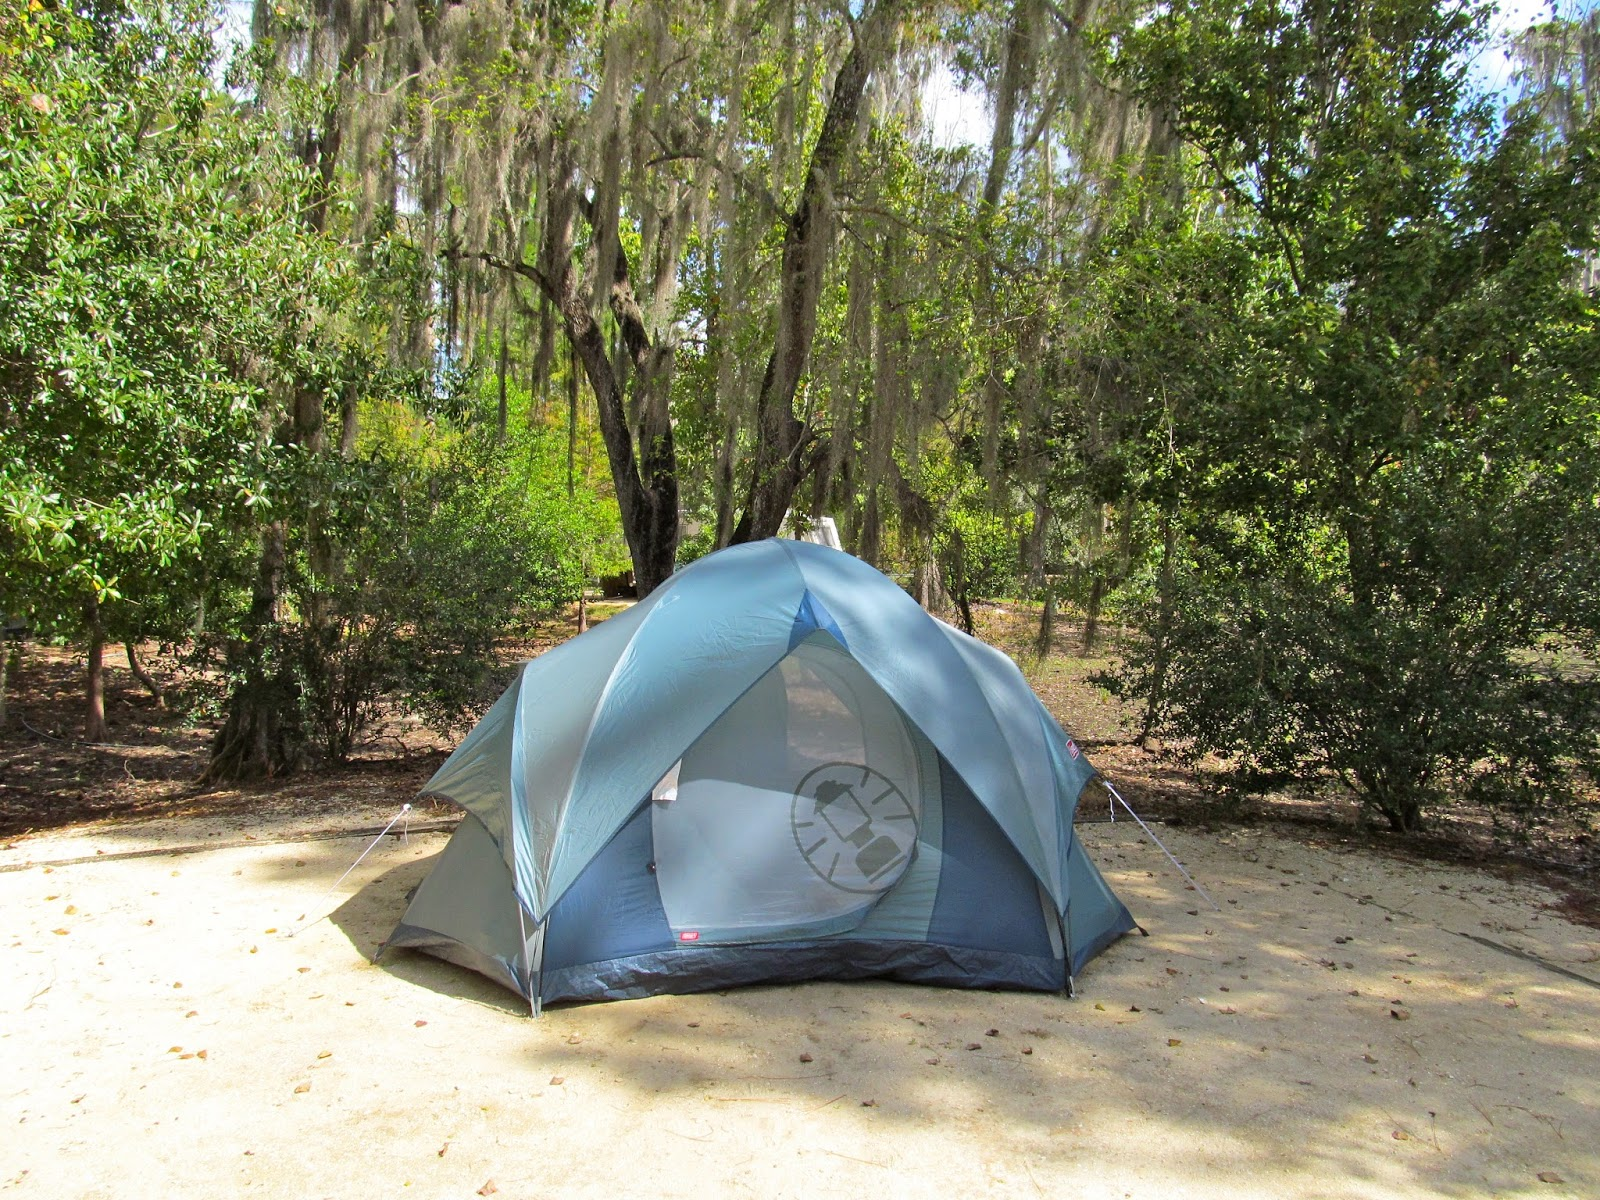 Tent C&ing at Ft. Wilderness at the Walt Disney World Resort & Our Outdoor Travel Stories: Tent Camping at Ft. Wilderness at the ...